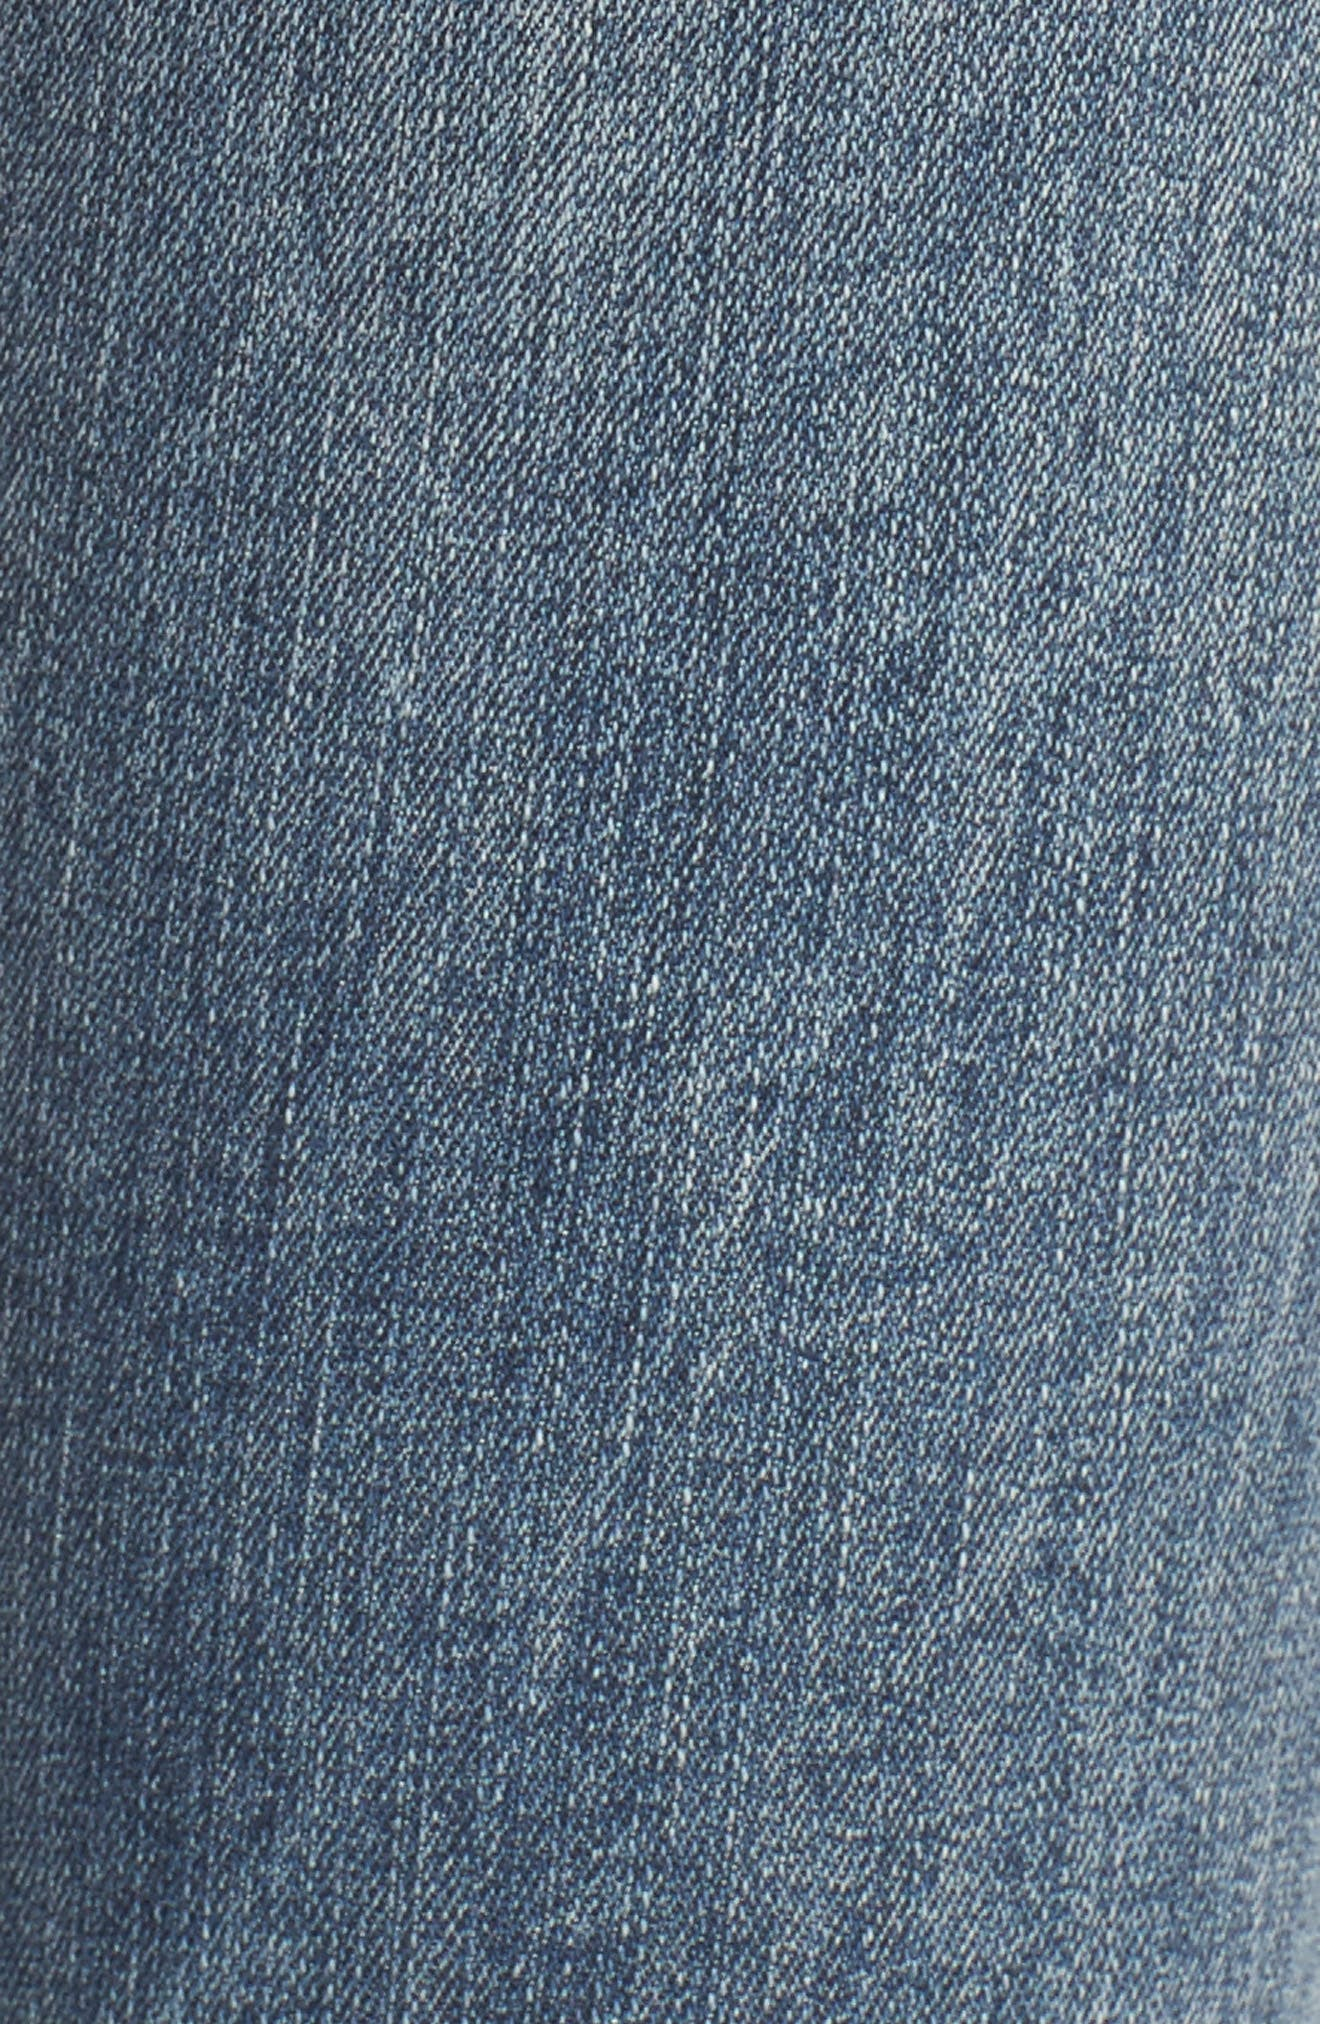 Taylor Zip Detail Skinny Ankle Jeans,                             Alternate thumbnail 5, color,                             Rockland